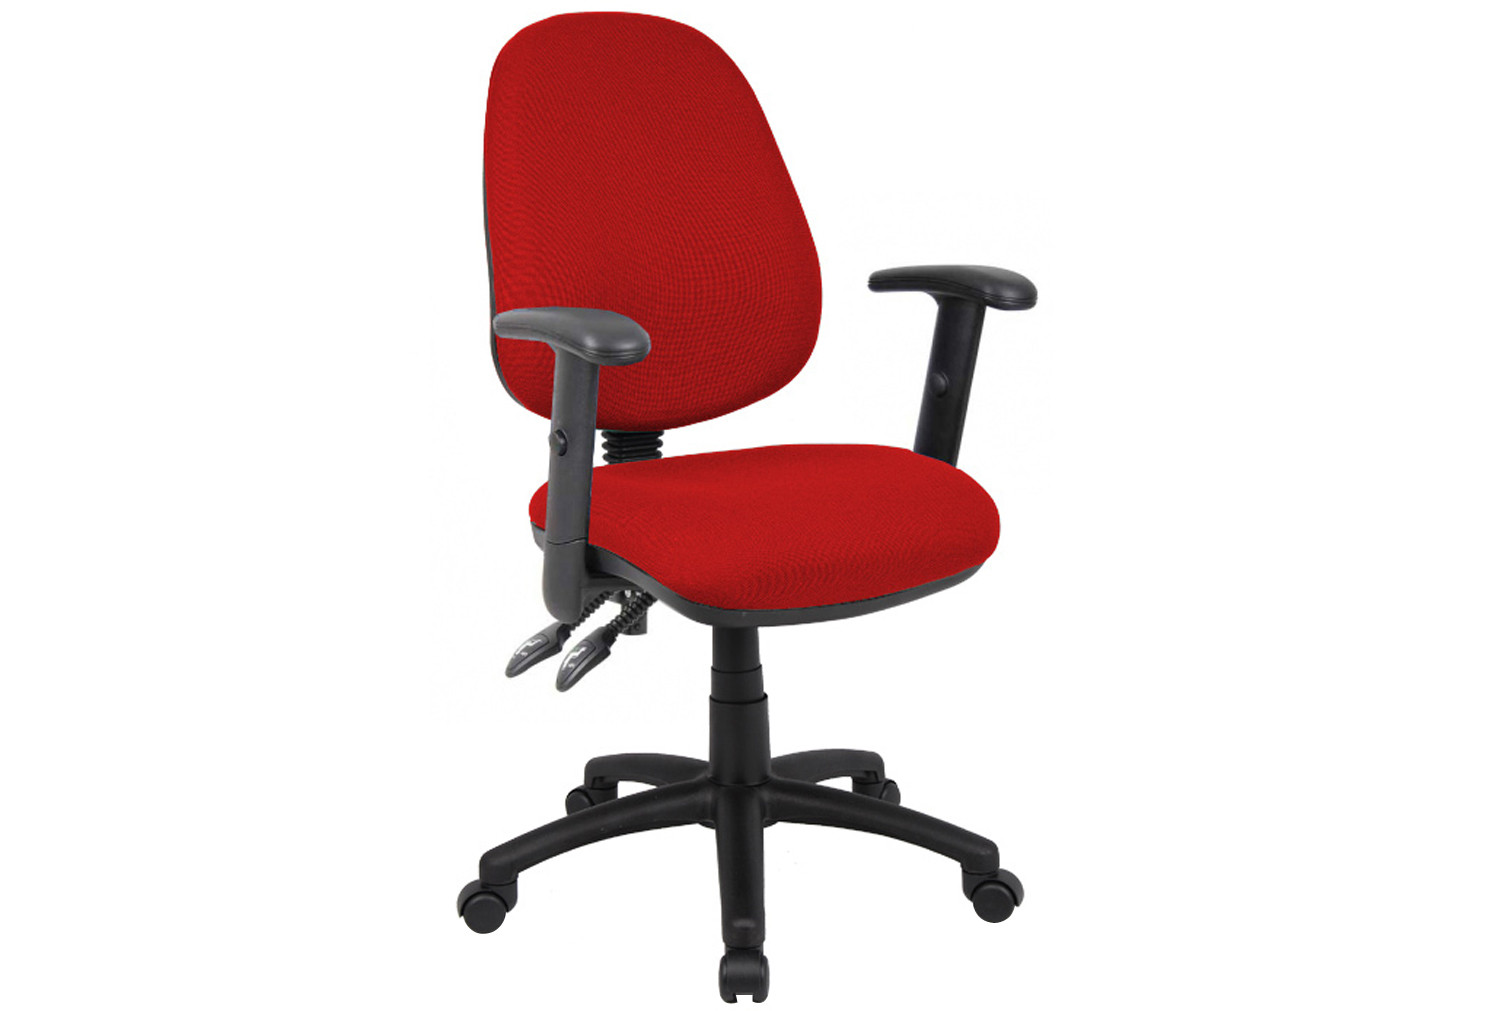 Vantage 3 Lever Operator Chair With Adjustable Arms